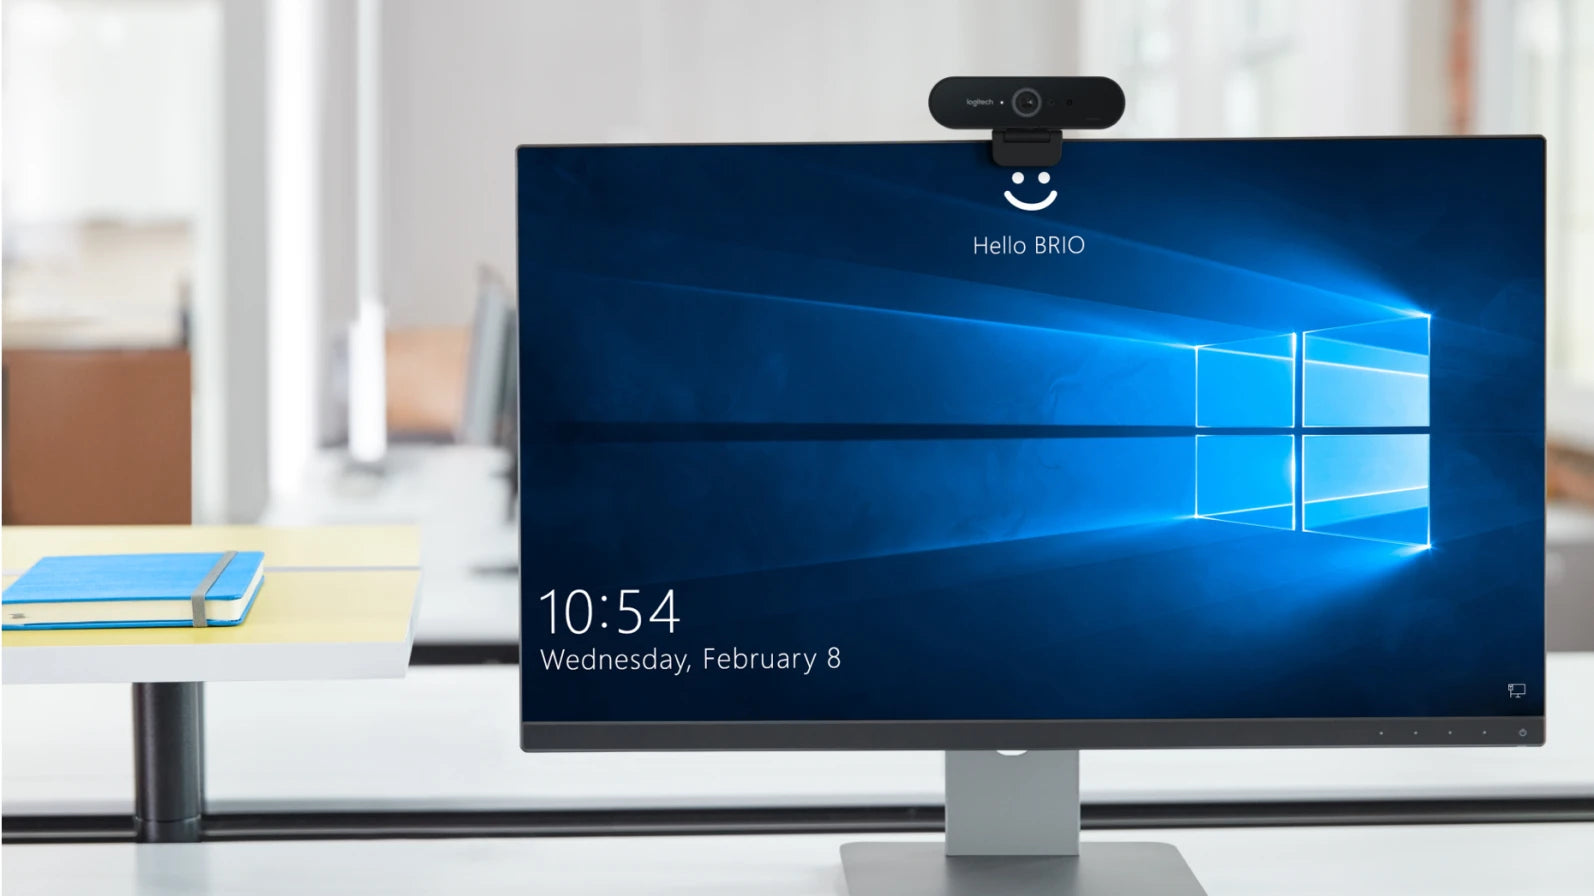 SECURITY MEETS CONVENIENCE Powered by both optical and infrared sensors, Brio delivers fast and secure facial recognition for Windows Hello. And no need to type a password for Windows 10: simply look into the Brio lens to login.